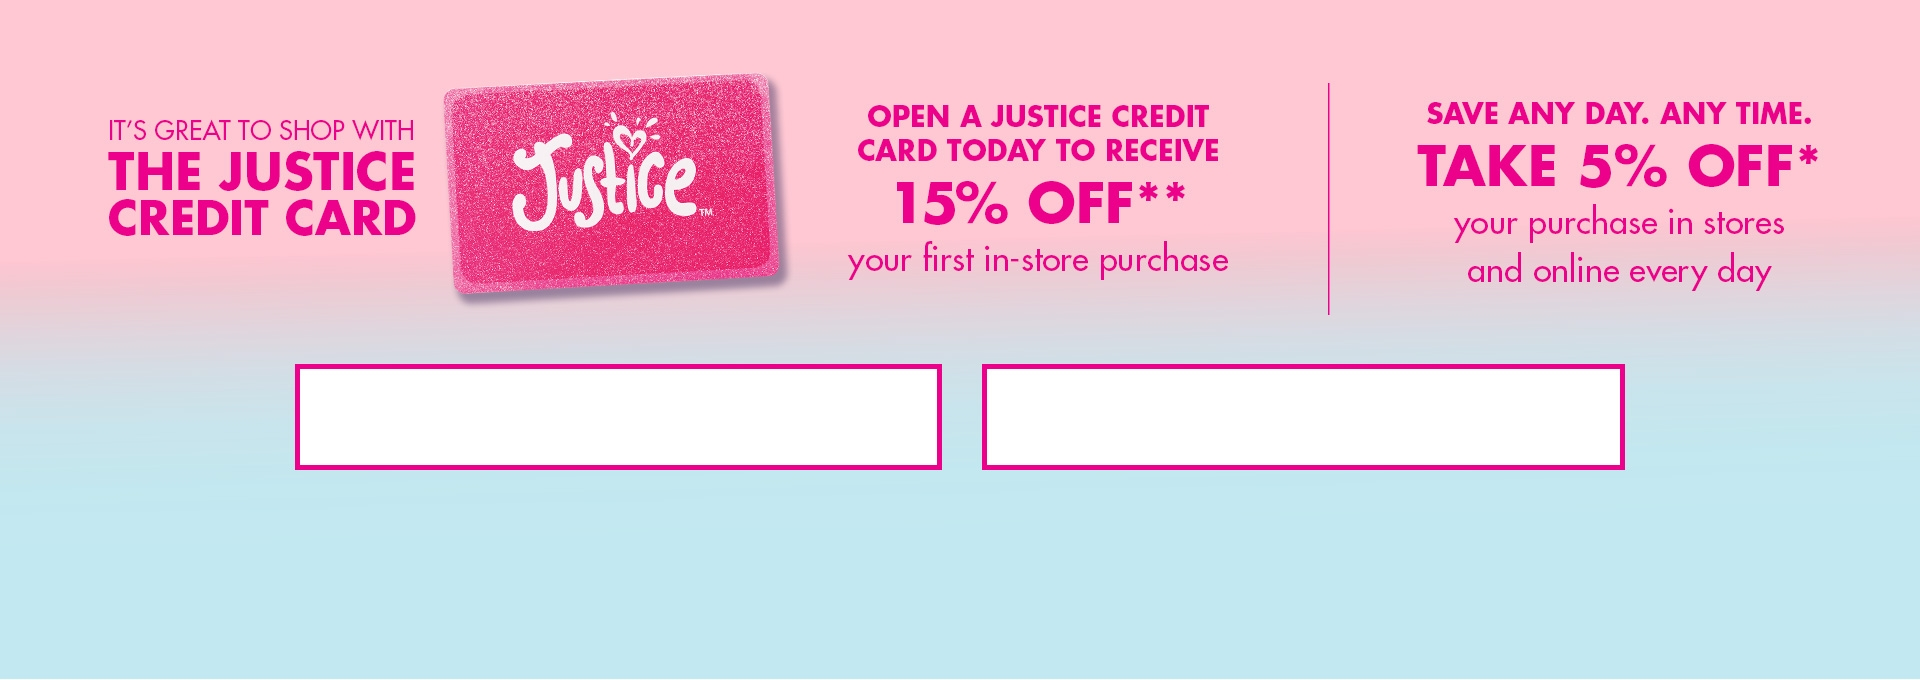 Justice Private Label Credit Card